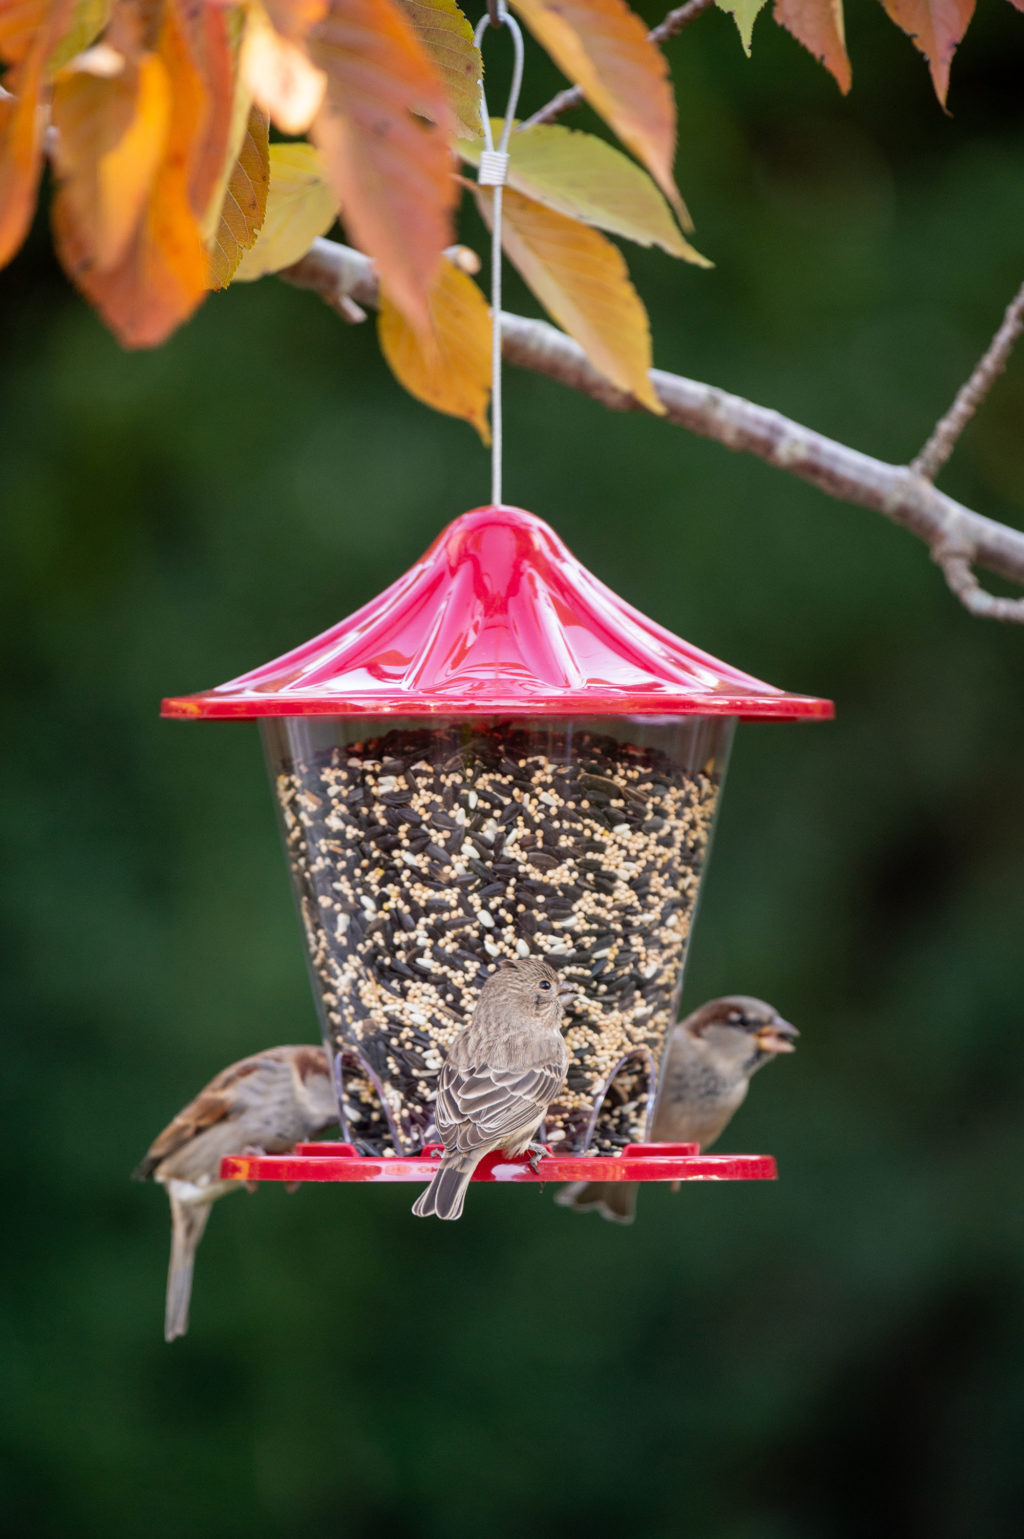 house finch and house sparrows eating from Red Round Seed Feeder